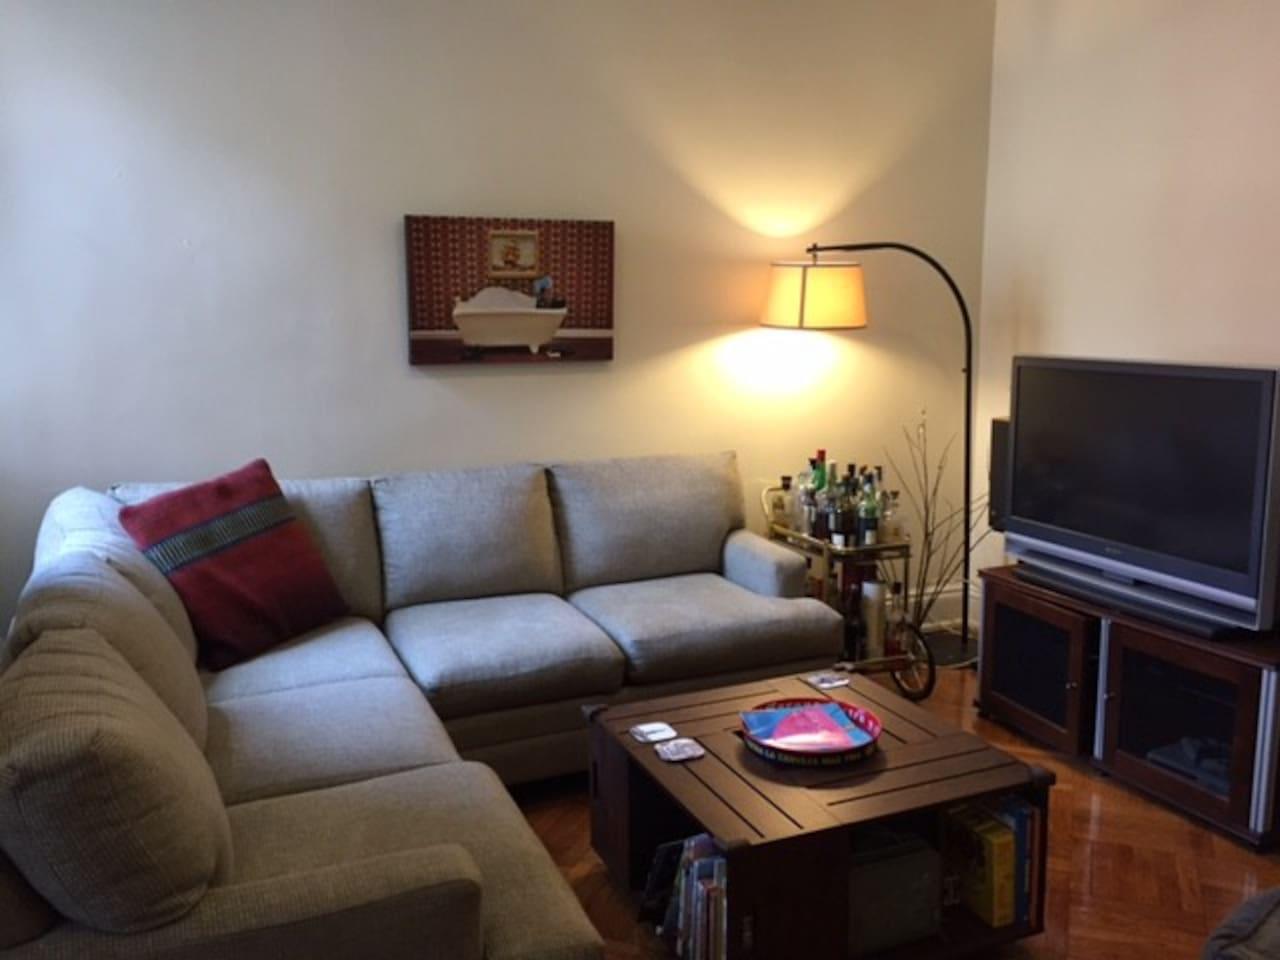 Spacious living room with comfy seating and entertainment options.